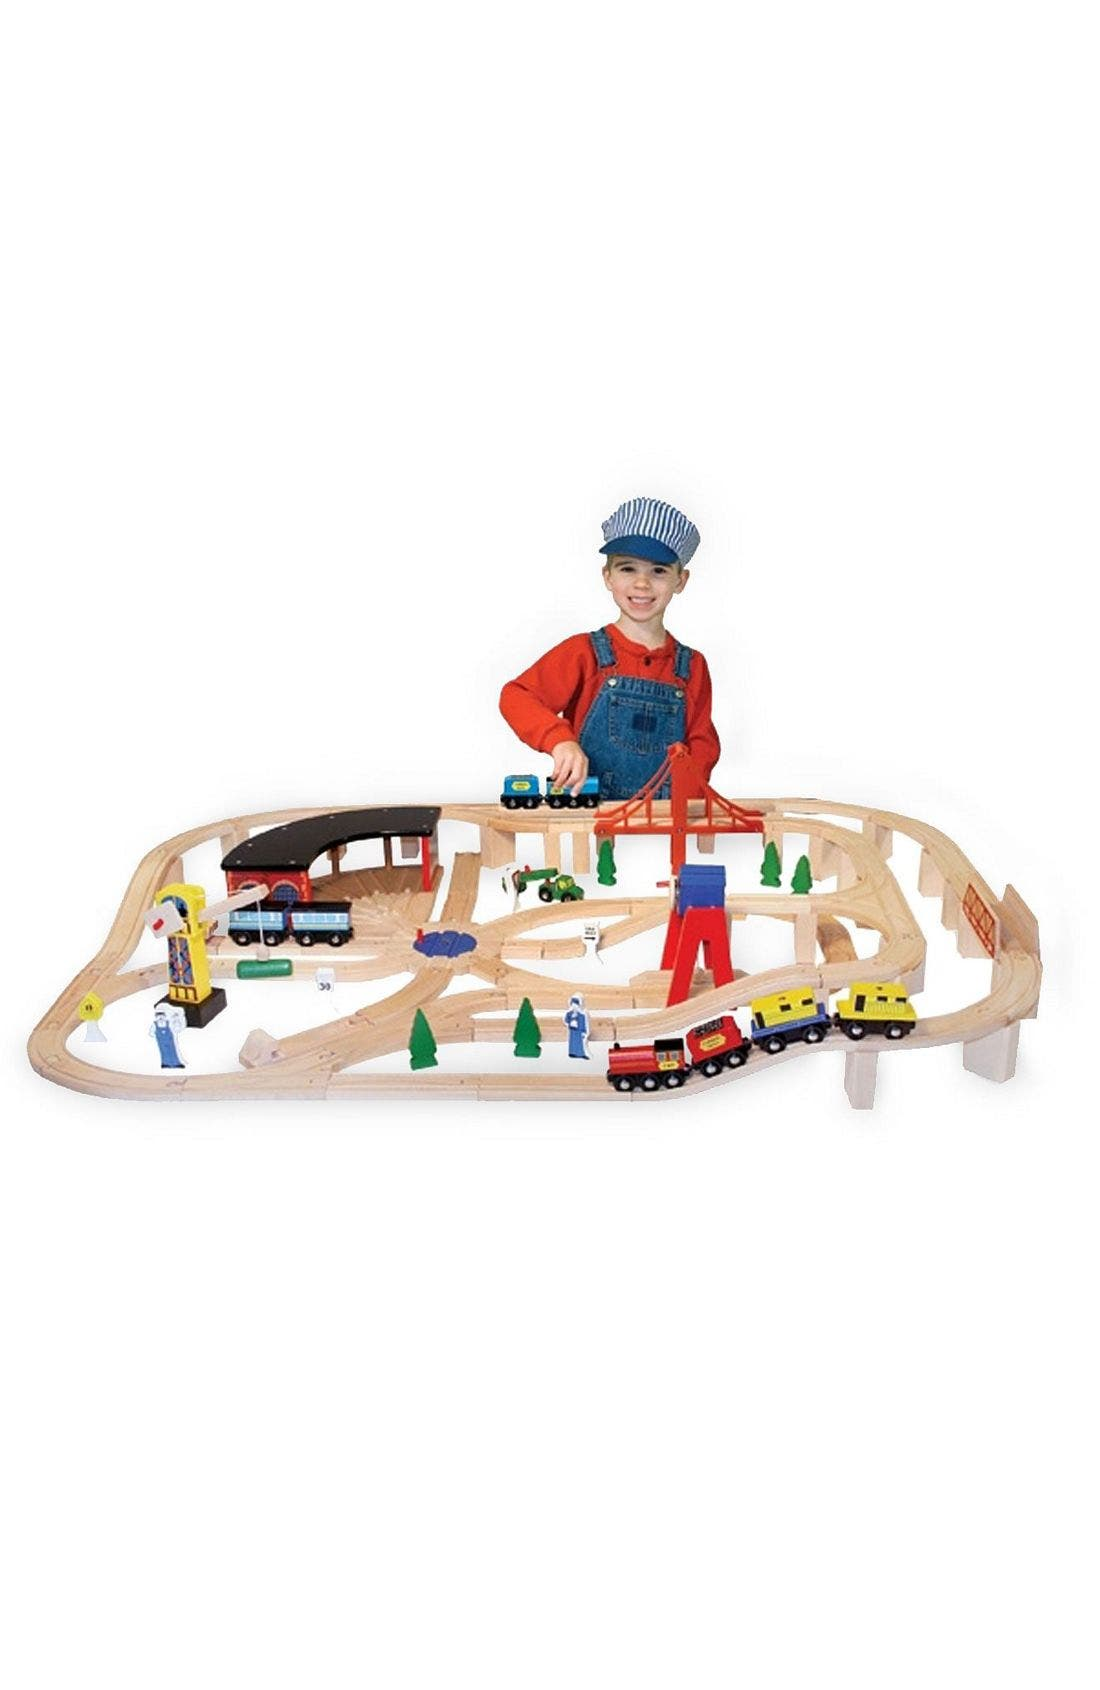 Melissa & Doug 132-Piece Wooden Railway Set